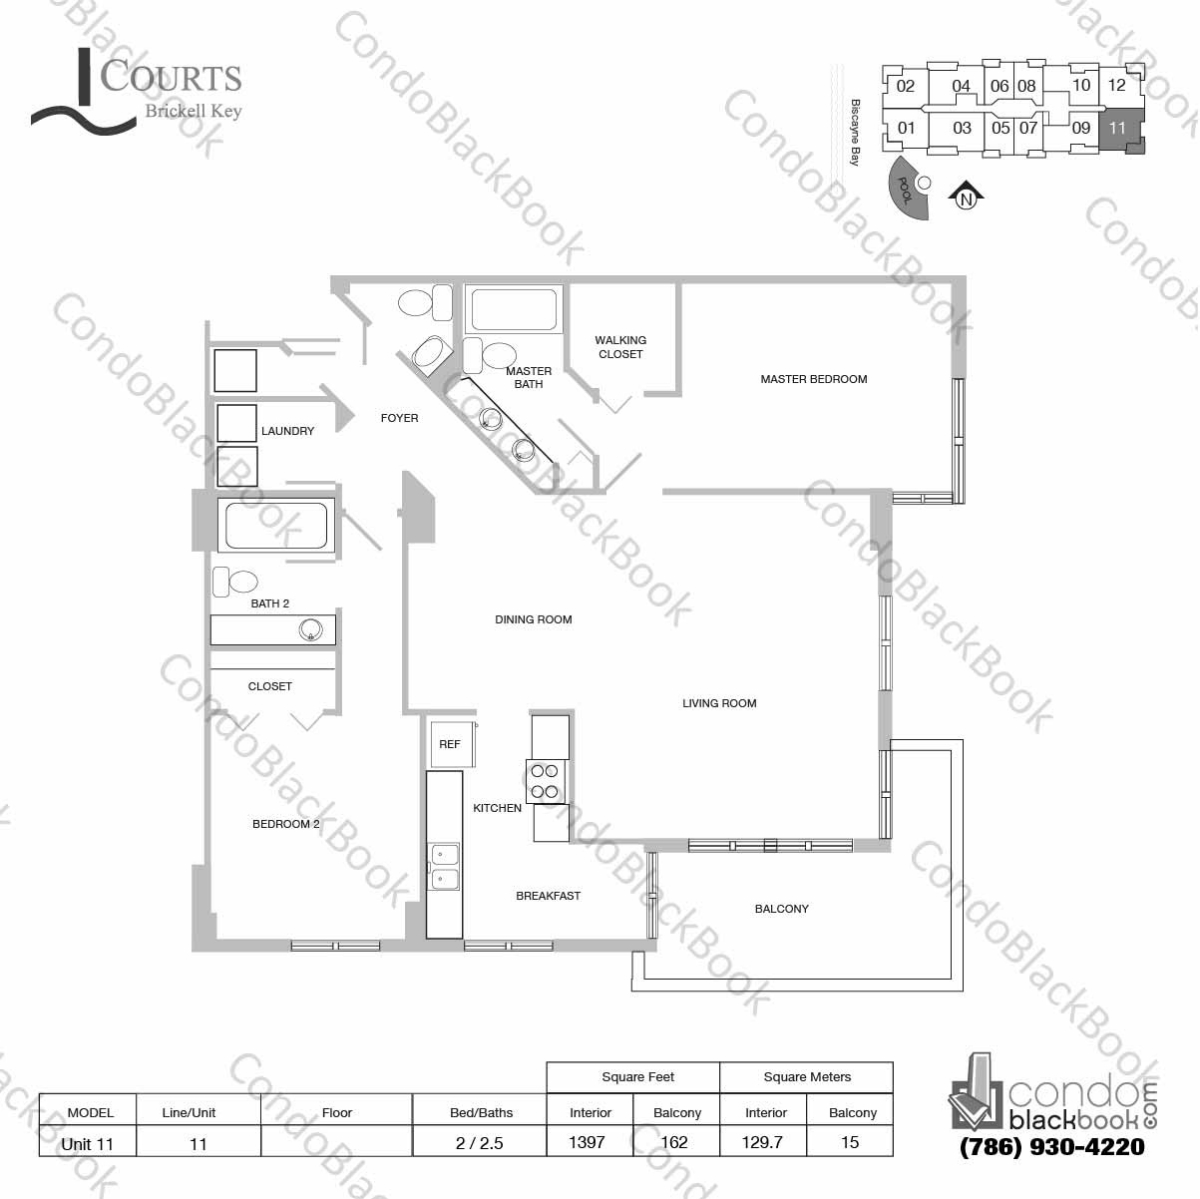 Floor plan for Courts Condo Brickell Key Brickell Key Miami, model Unit 11, line 11, 2 / 2.5 bedrooms, 1397 sq ft